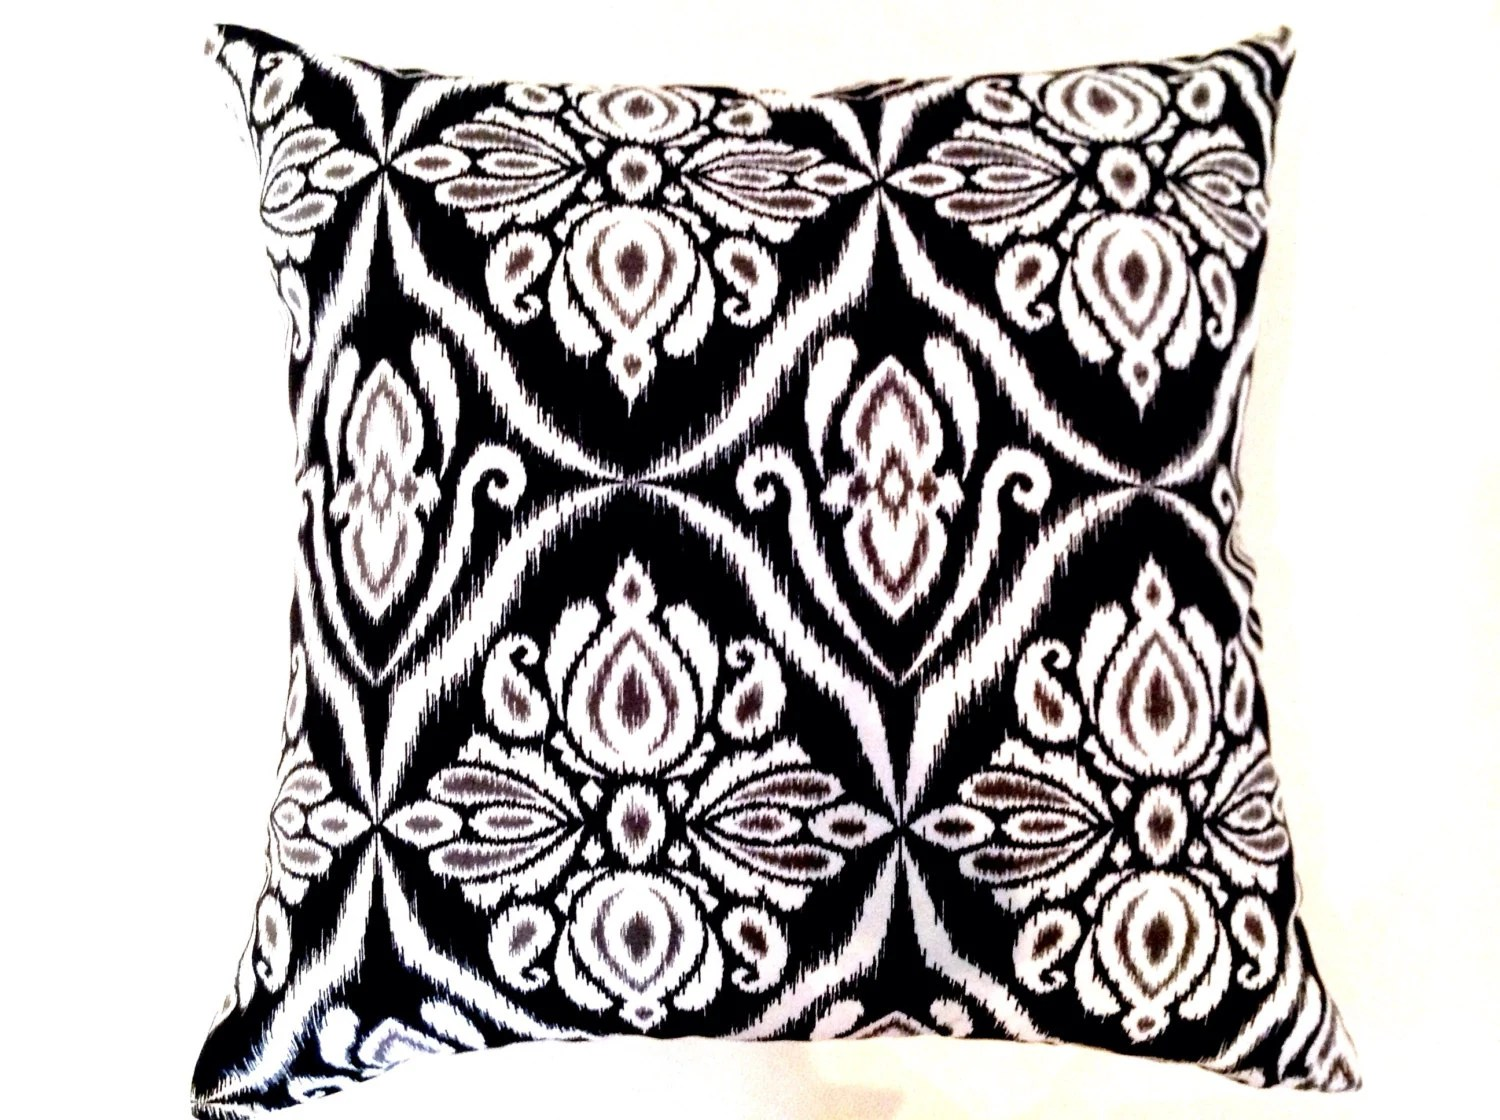 Boho Cushions Australia Cushions Boho Ikat Design Cushions Pillows Black And White